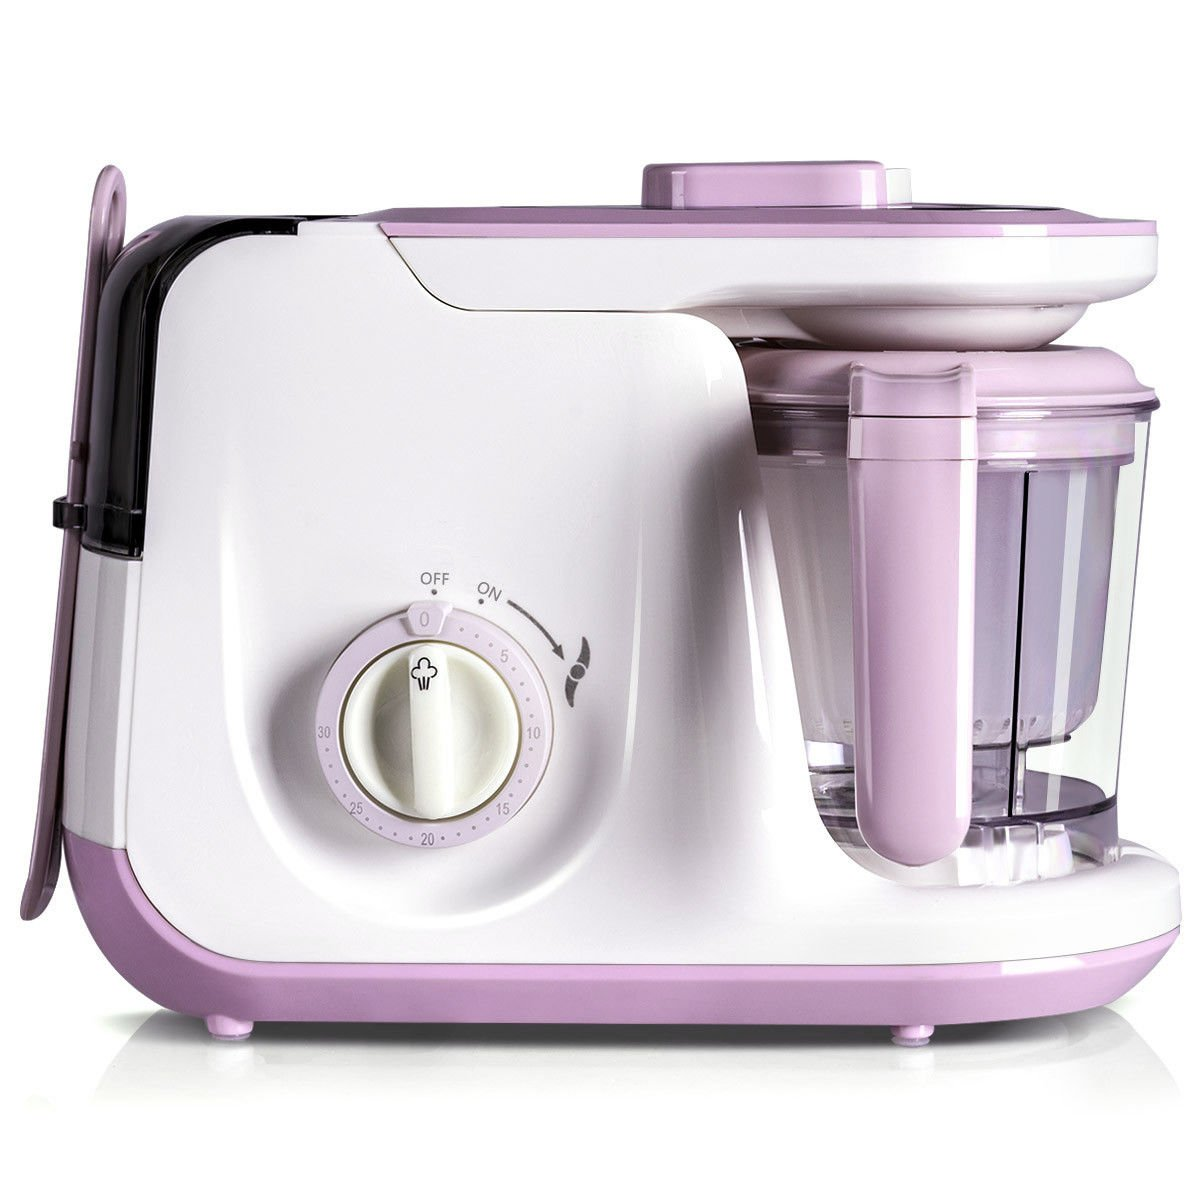 Costzon Baby Food Processor, 5 in 1 Food Maker for Toddlers with Steam, Blend, Chop, Sterilizer, Deforest, Clean Function, One Hand Operation, Auto Shut-Off